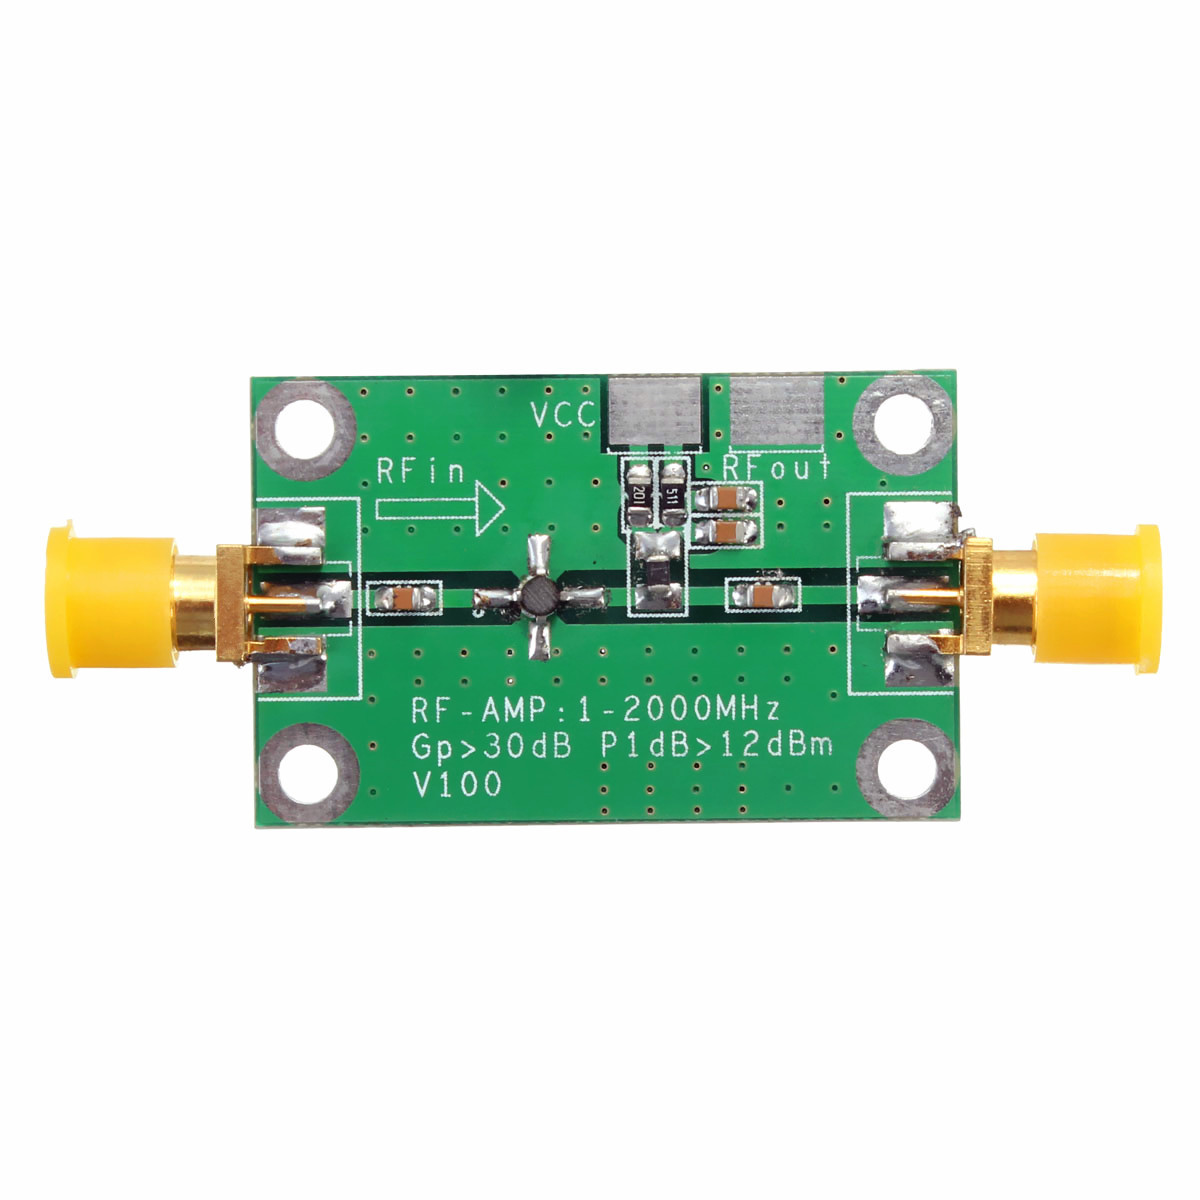 Leory Ultra-high Frequency 1-2000mhz 2ghz 30db Rf Amplifier Board Broadband Gain Amplification Low Noise Module For Vhfvhf/uhf Novel Design; In